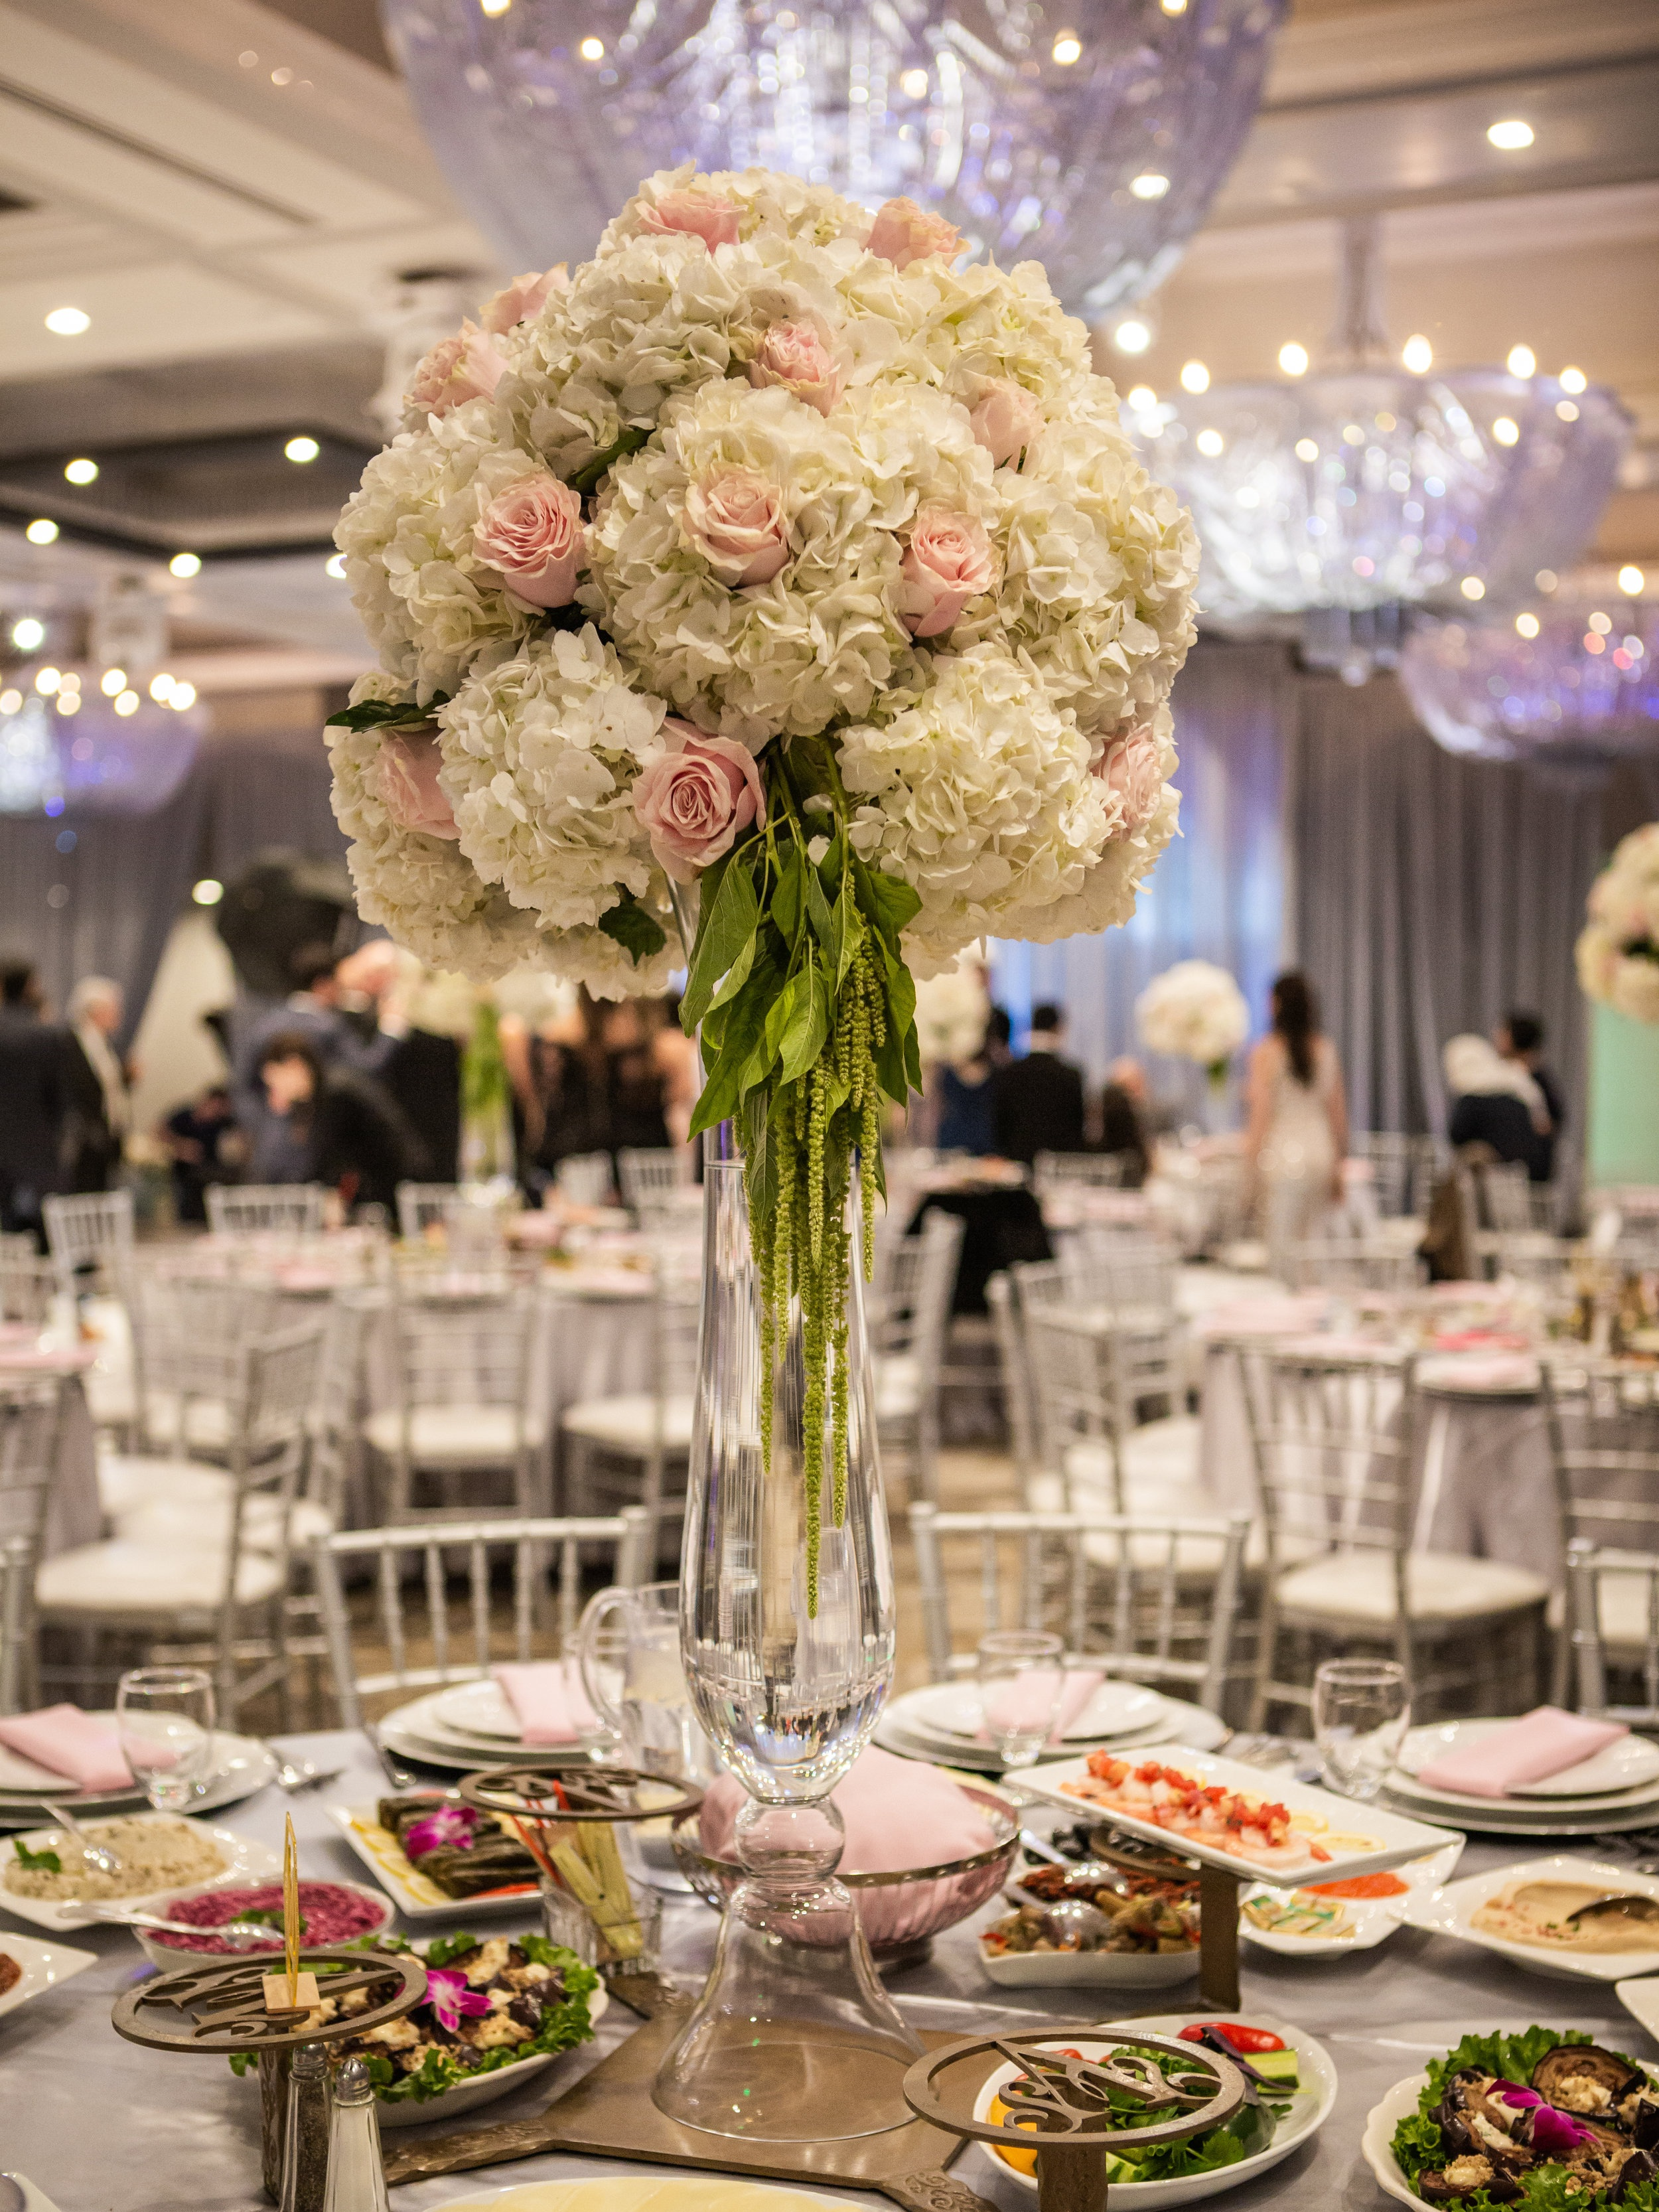 Romantic Wedding Theme Feature - Glendale, CA - Legacy Ballroom - A wedding reception table adorned with a large floral arrangement in a tall glass vase.